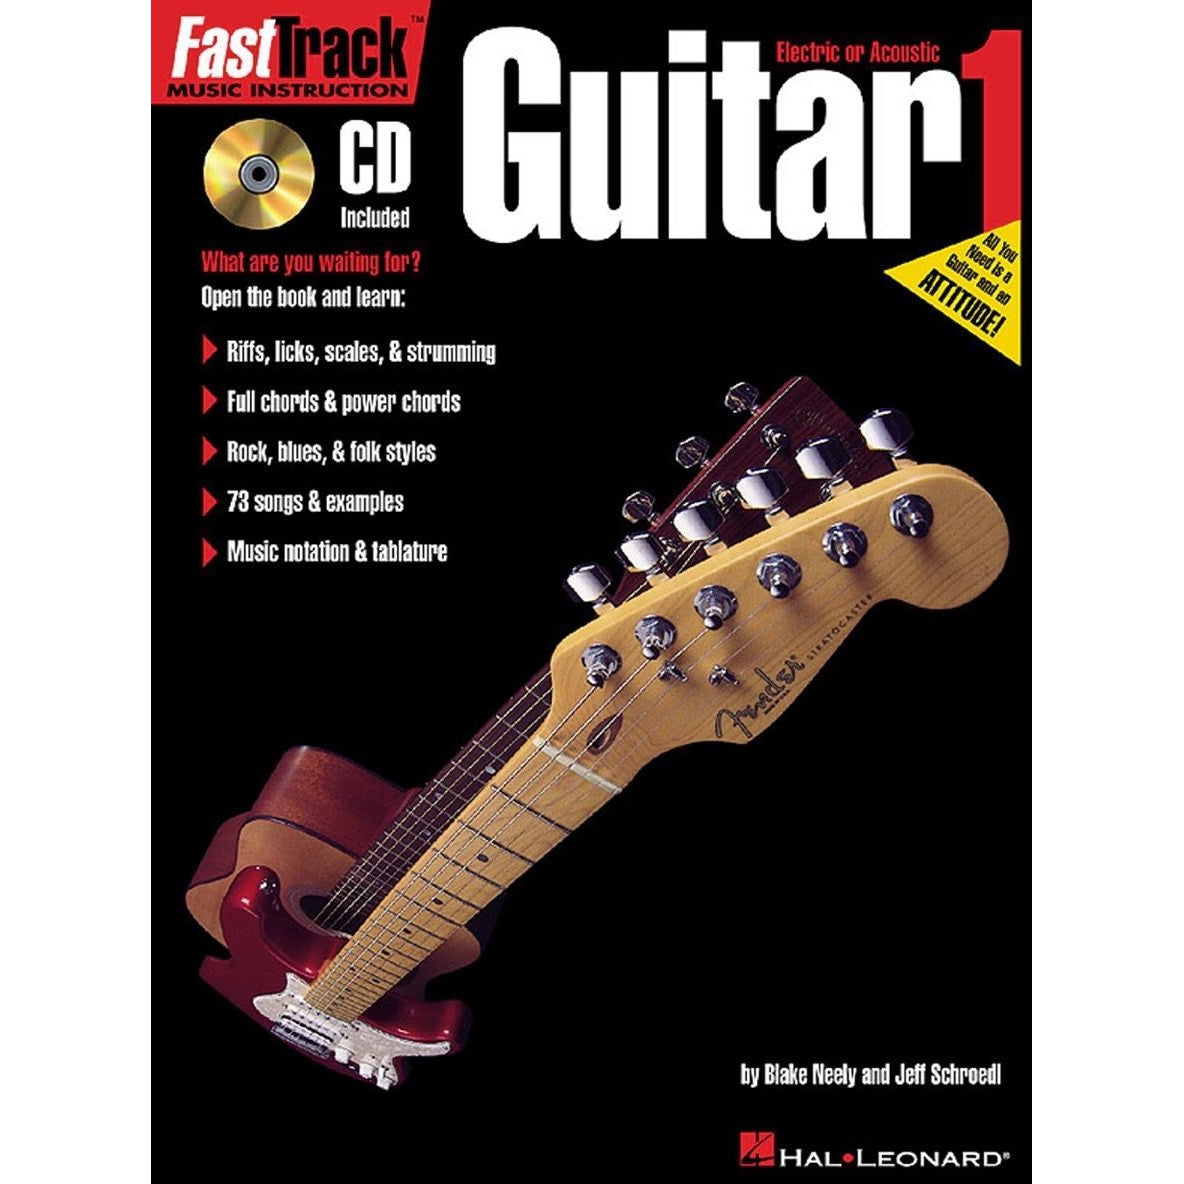 Hal Leonard FastTrack Guitar Method 1 Book